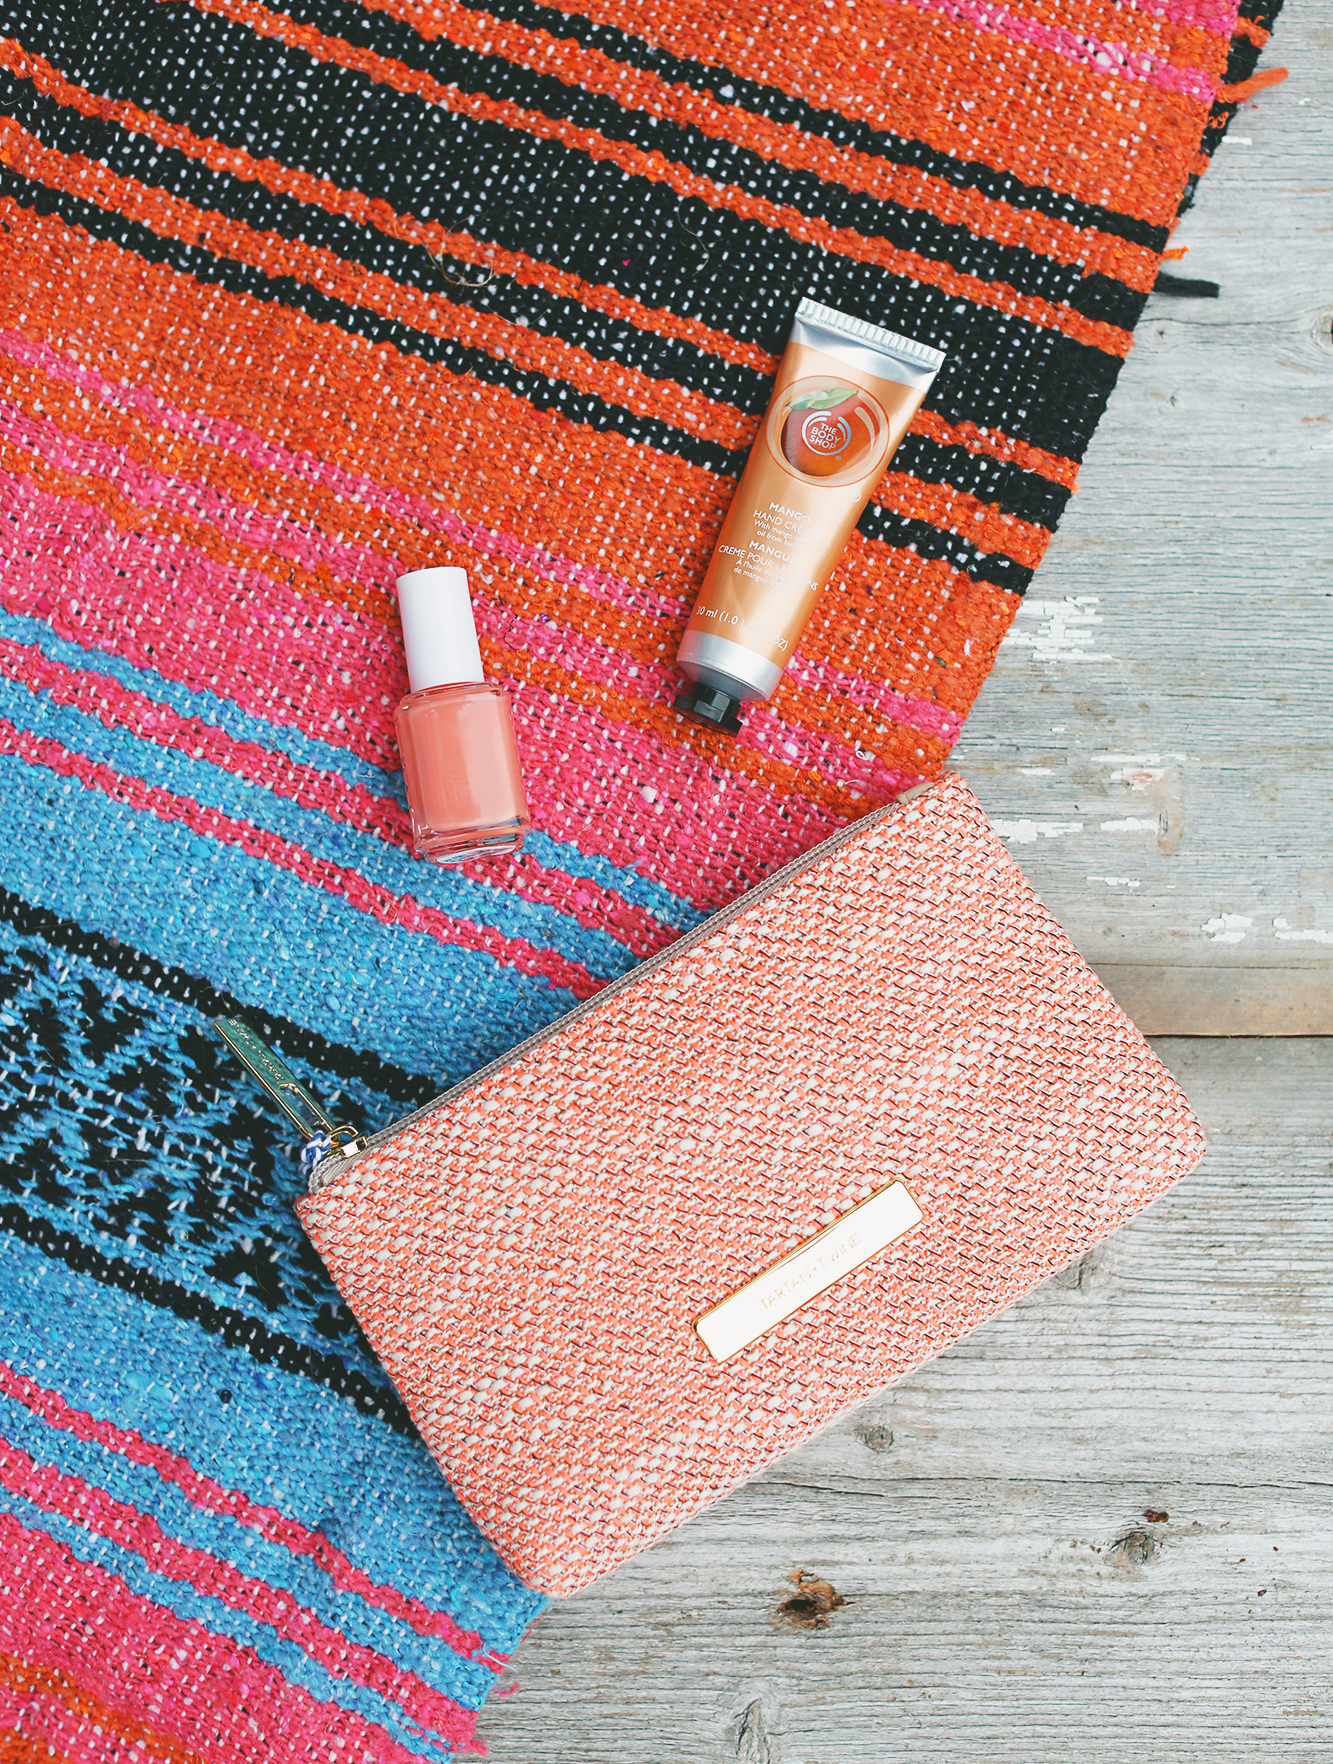 A bright makeup case and fun colored polish make Spring feel right around the corner. Win these treats on Lily & Val Living!